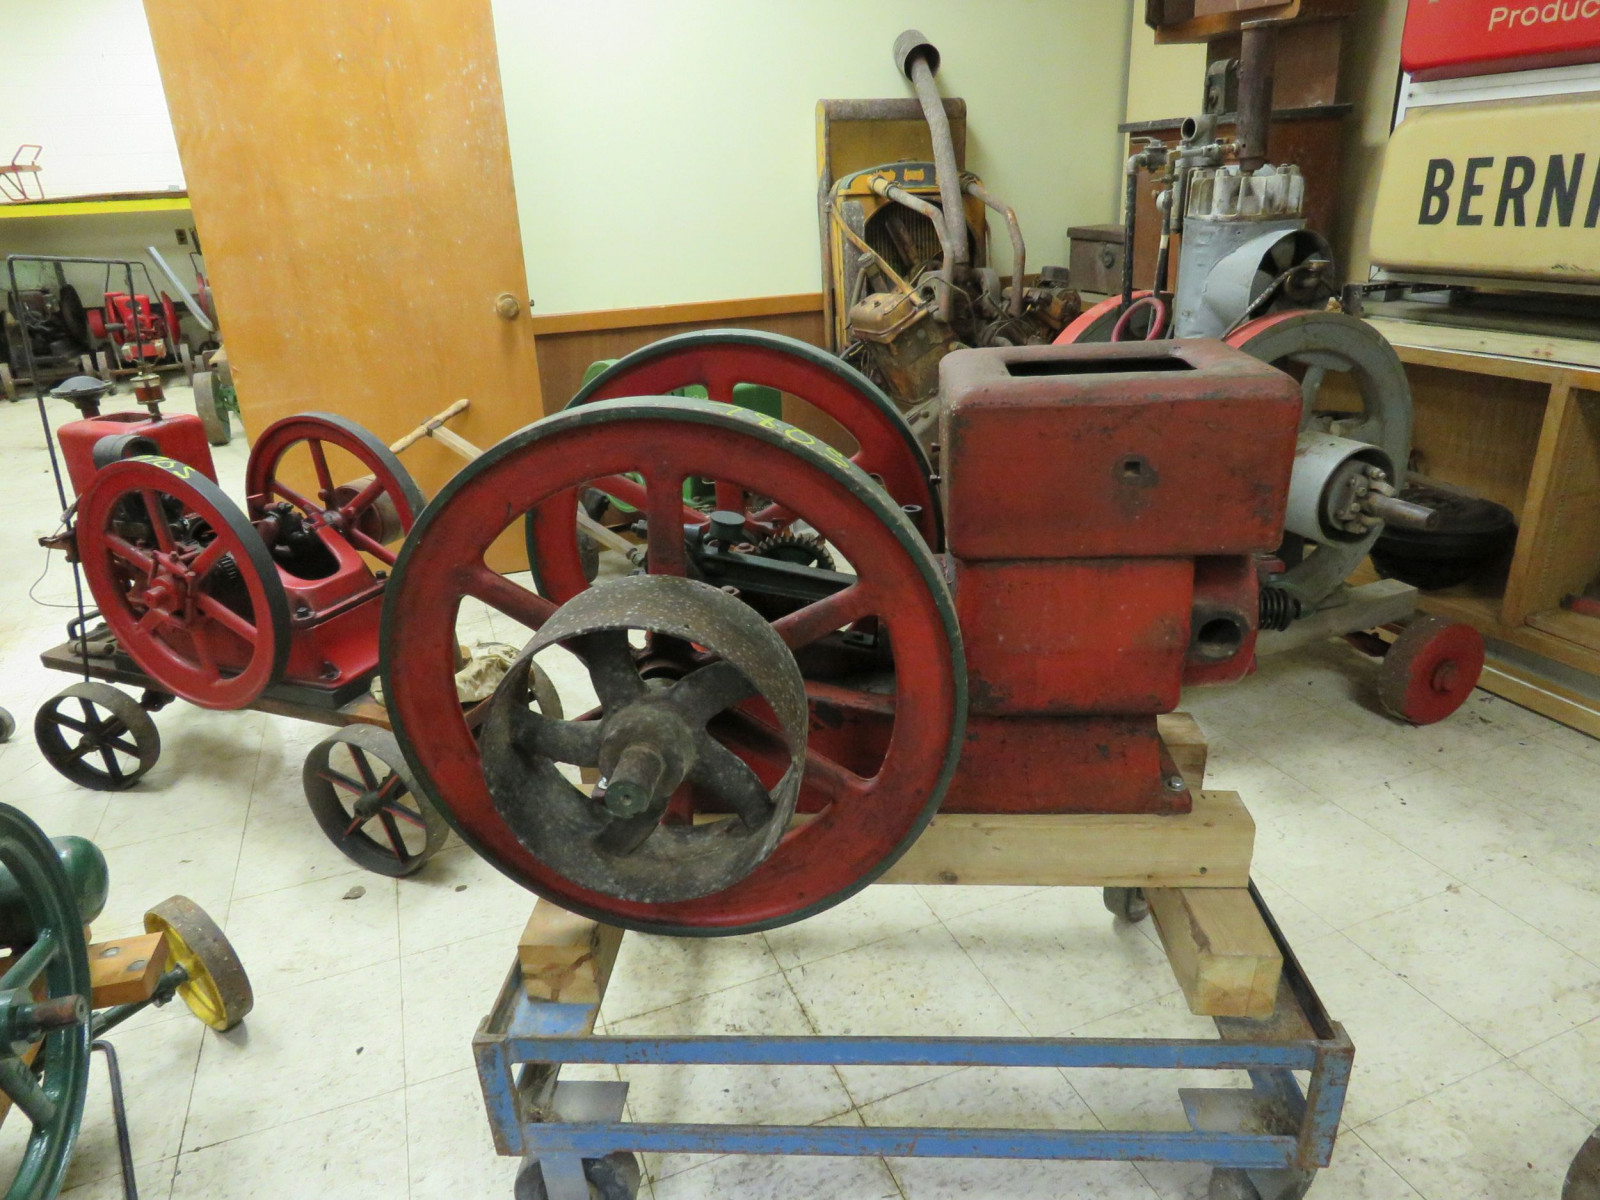 Meco 3HP Stationary Gas Engine - Image 1